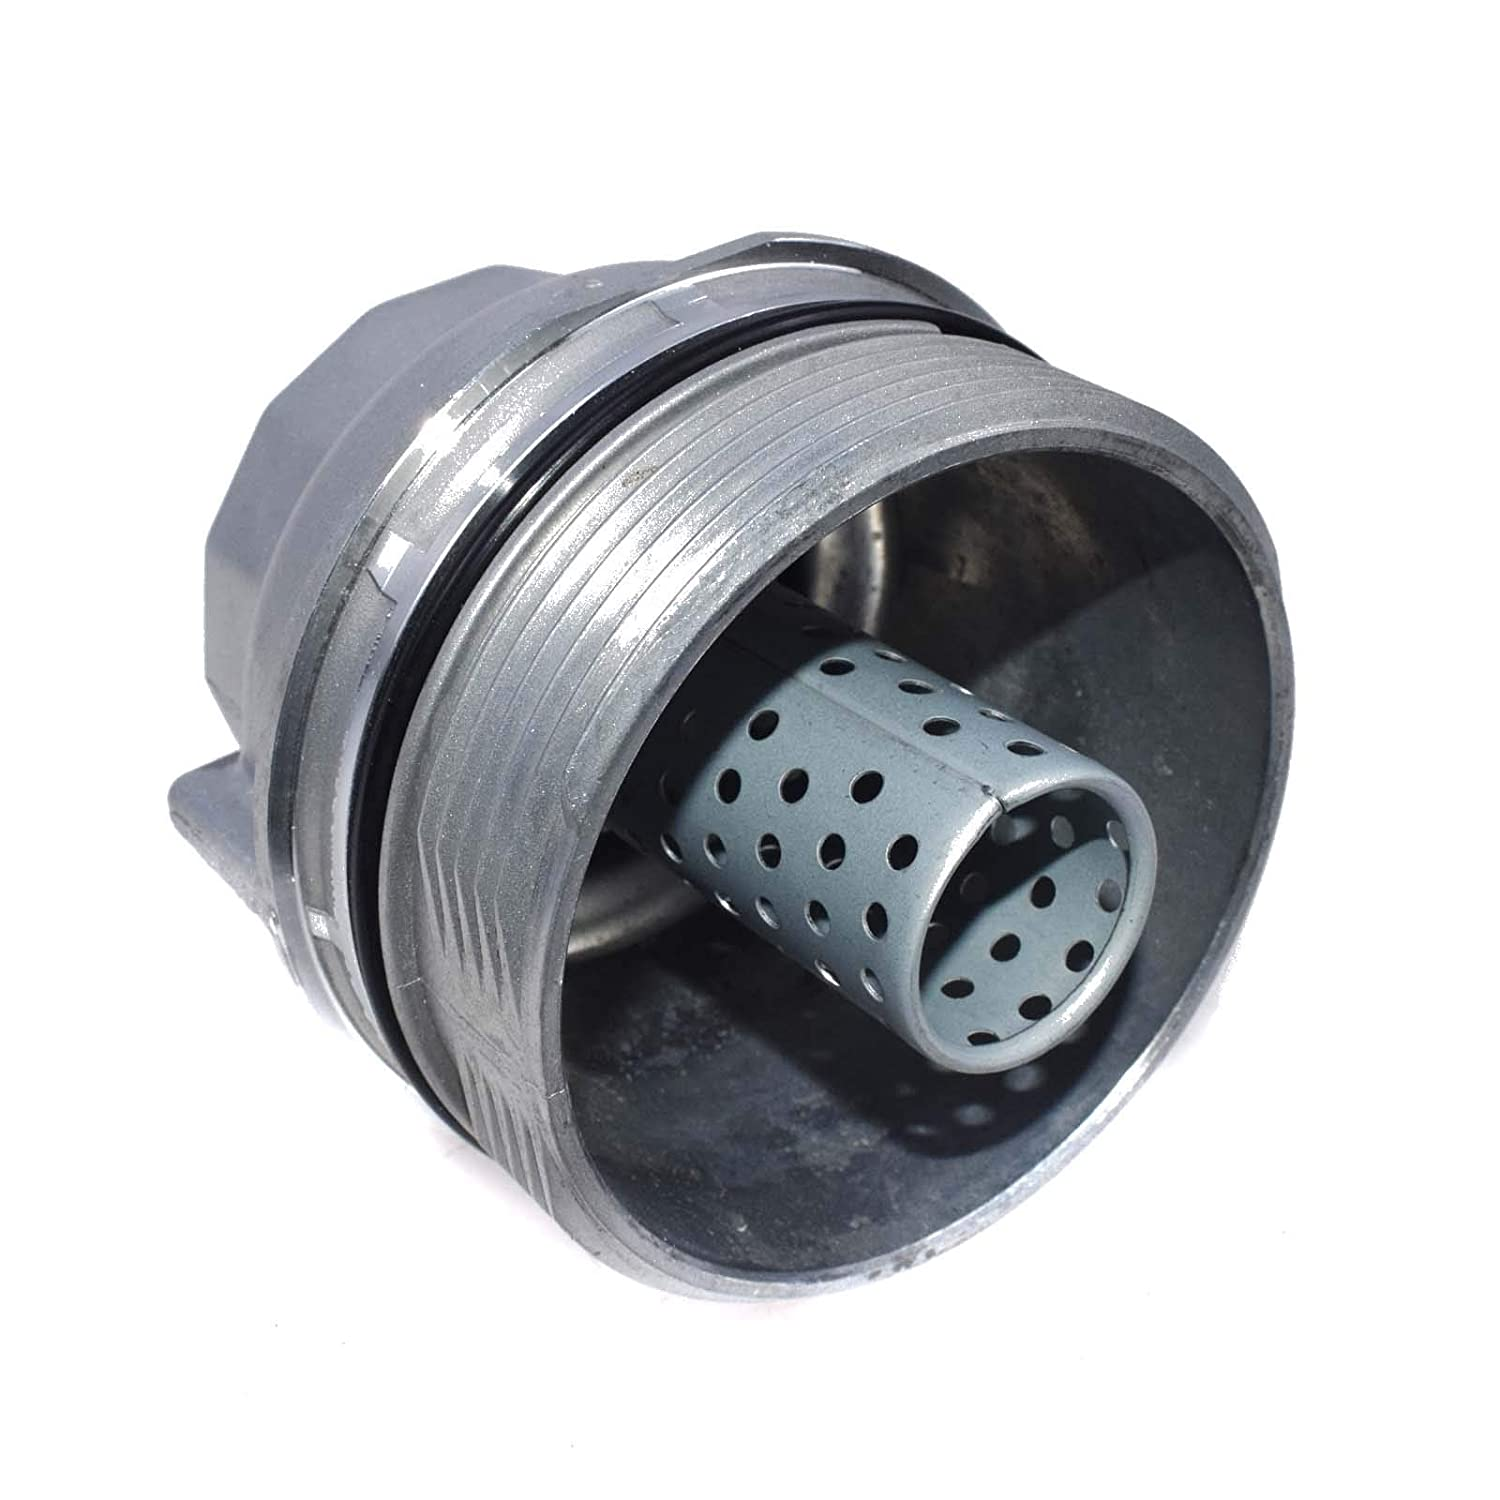 Oil Filter Housing Cap Assembly 15620-31060 NEW FOR Lexus RX350 RX450h Toyota Venza Avalon Camry Highlander Sienna